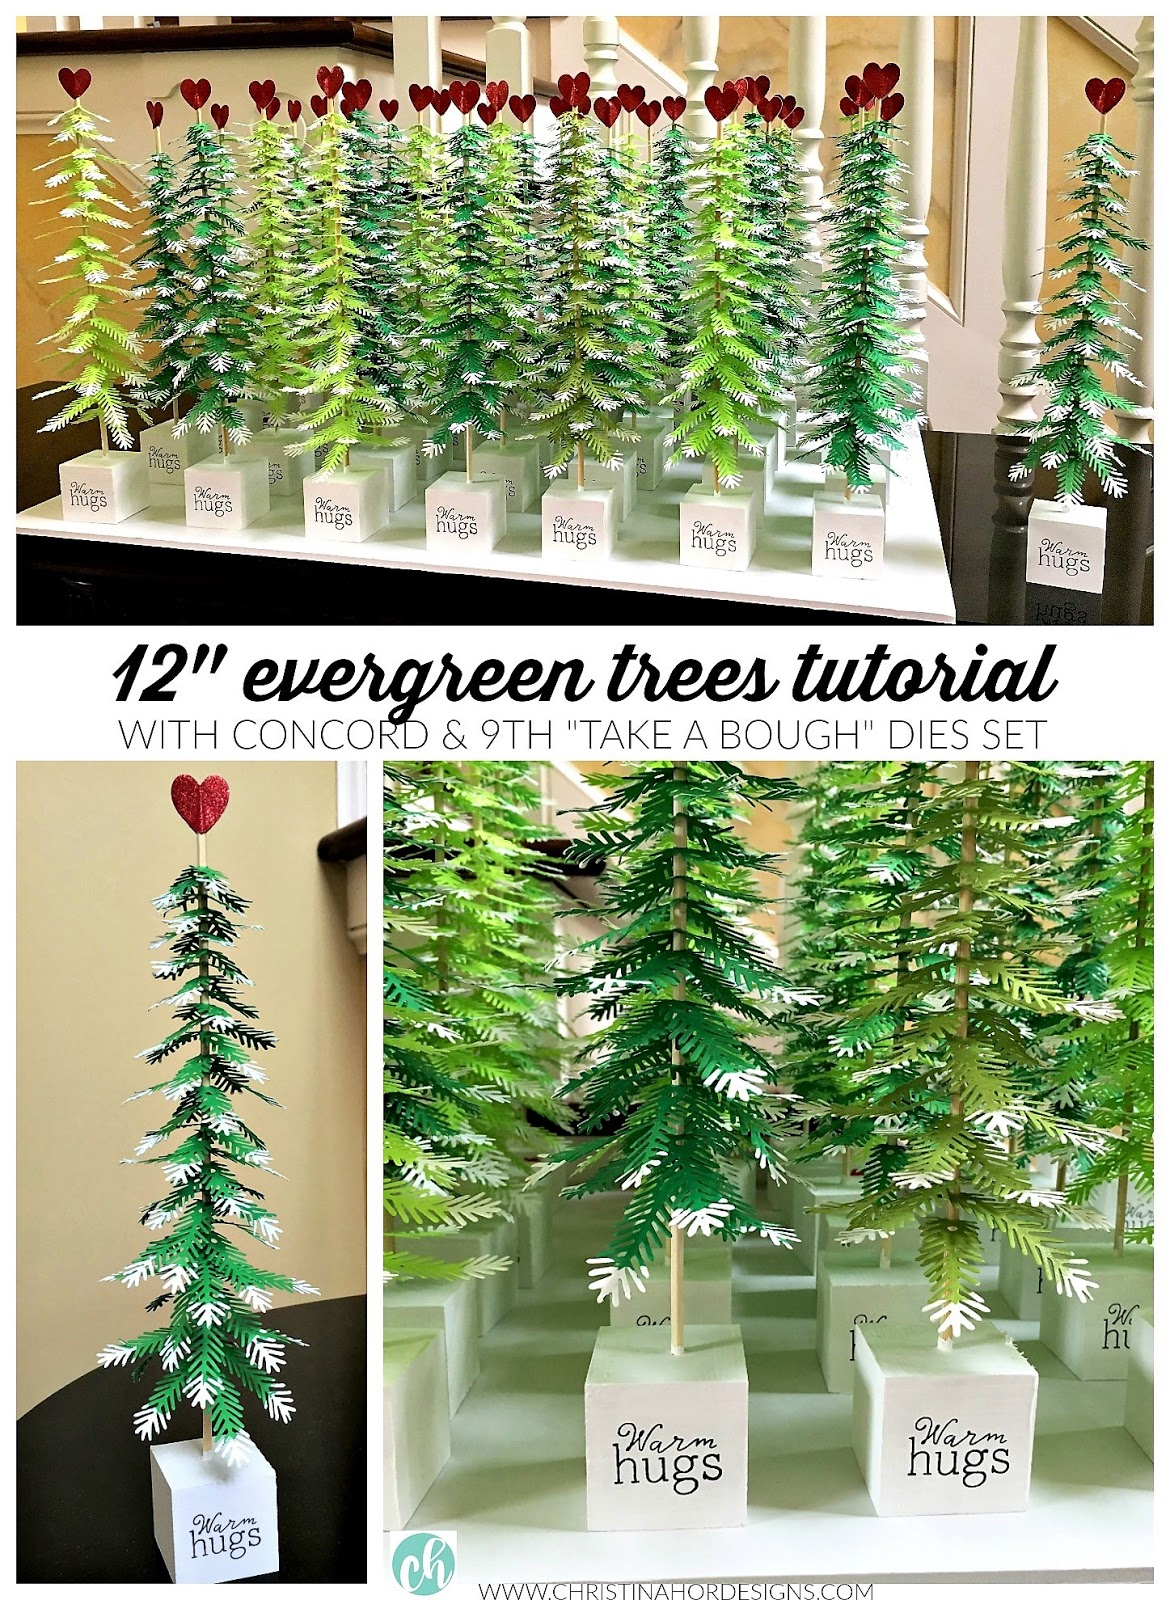 mini evergreen tree tutorial Concord & 9th Take A Bough Dies Set